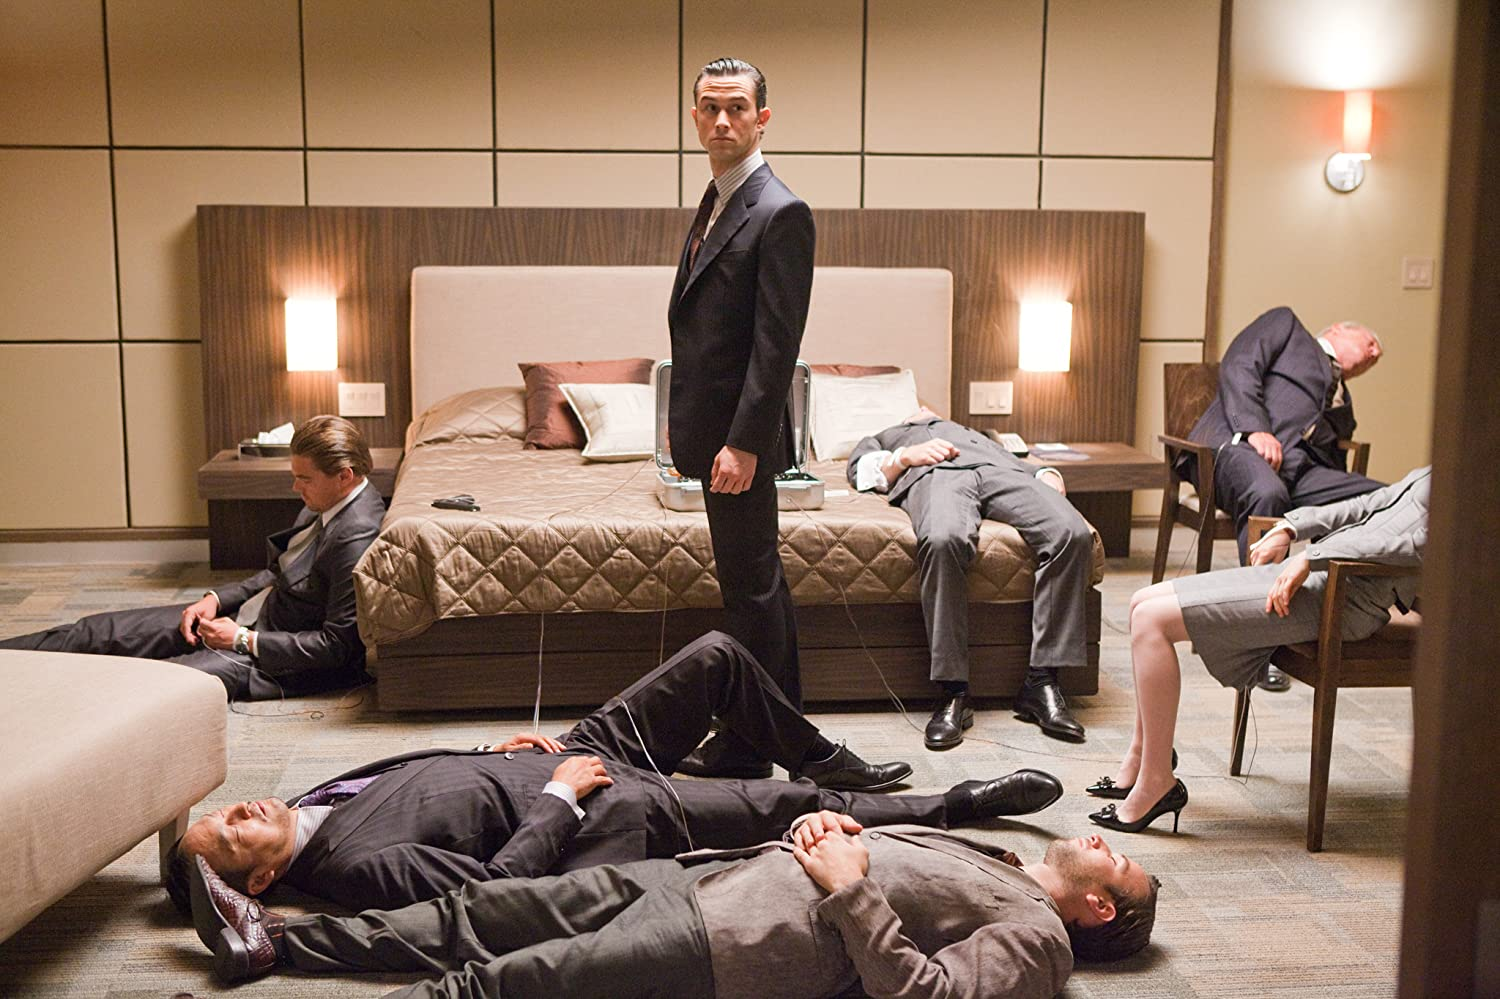 Leonardo DiCaprio, Tom Berenger, Joseph Gordon-Levitt, Tom Hardy, Cillian Murphy, Ellen Page, and Ken Watanabe in Inception (2010)